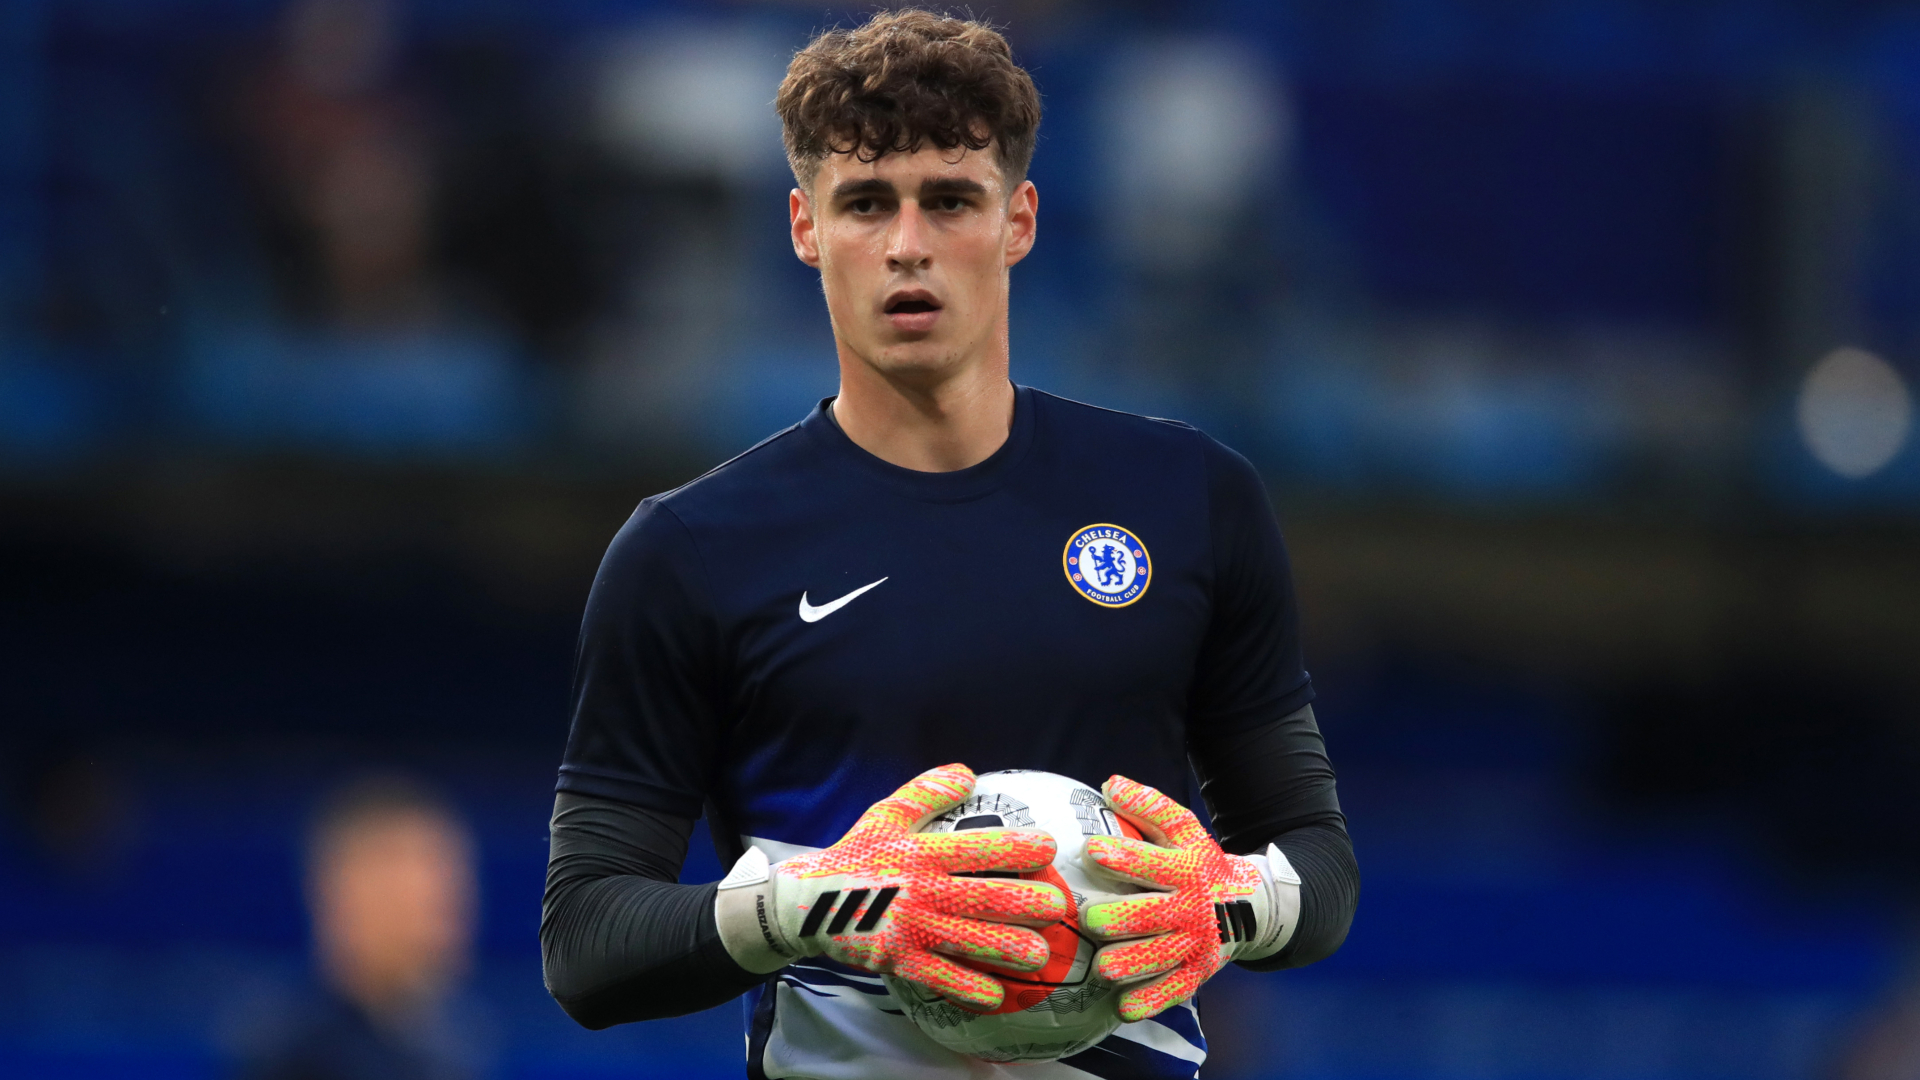 Kepa Arrizabalaga was backed by Chelsea captain Cesar Azpilicueta.